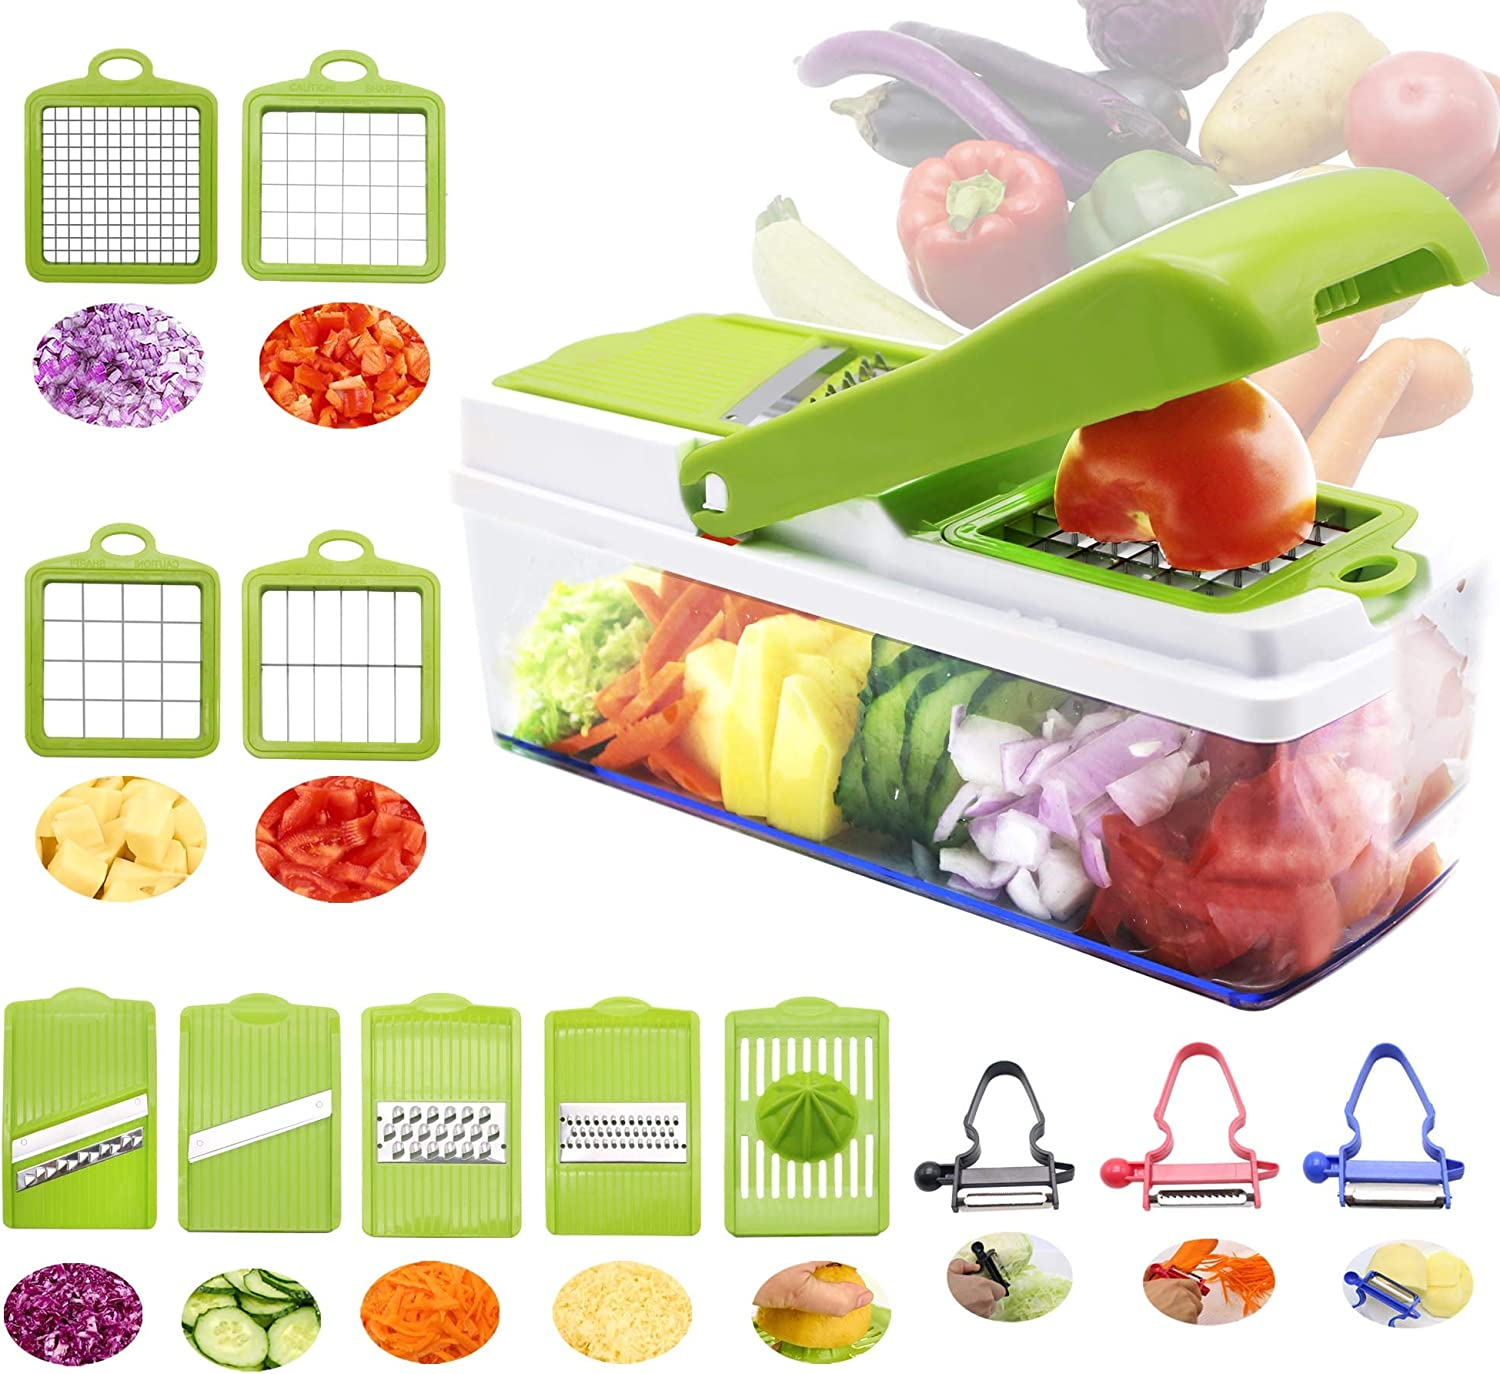 Vegetable Chopper And Mandoline Slicer Dicer Peeler, RTMAXCO Food Chopper Onion Chopper Julienne,All in 1 Multifunctional Mandolin, Fruits Veggie, Kitchen Gadget.